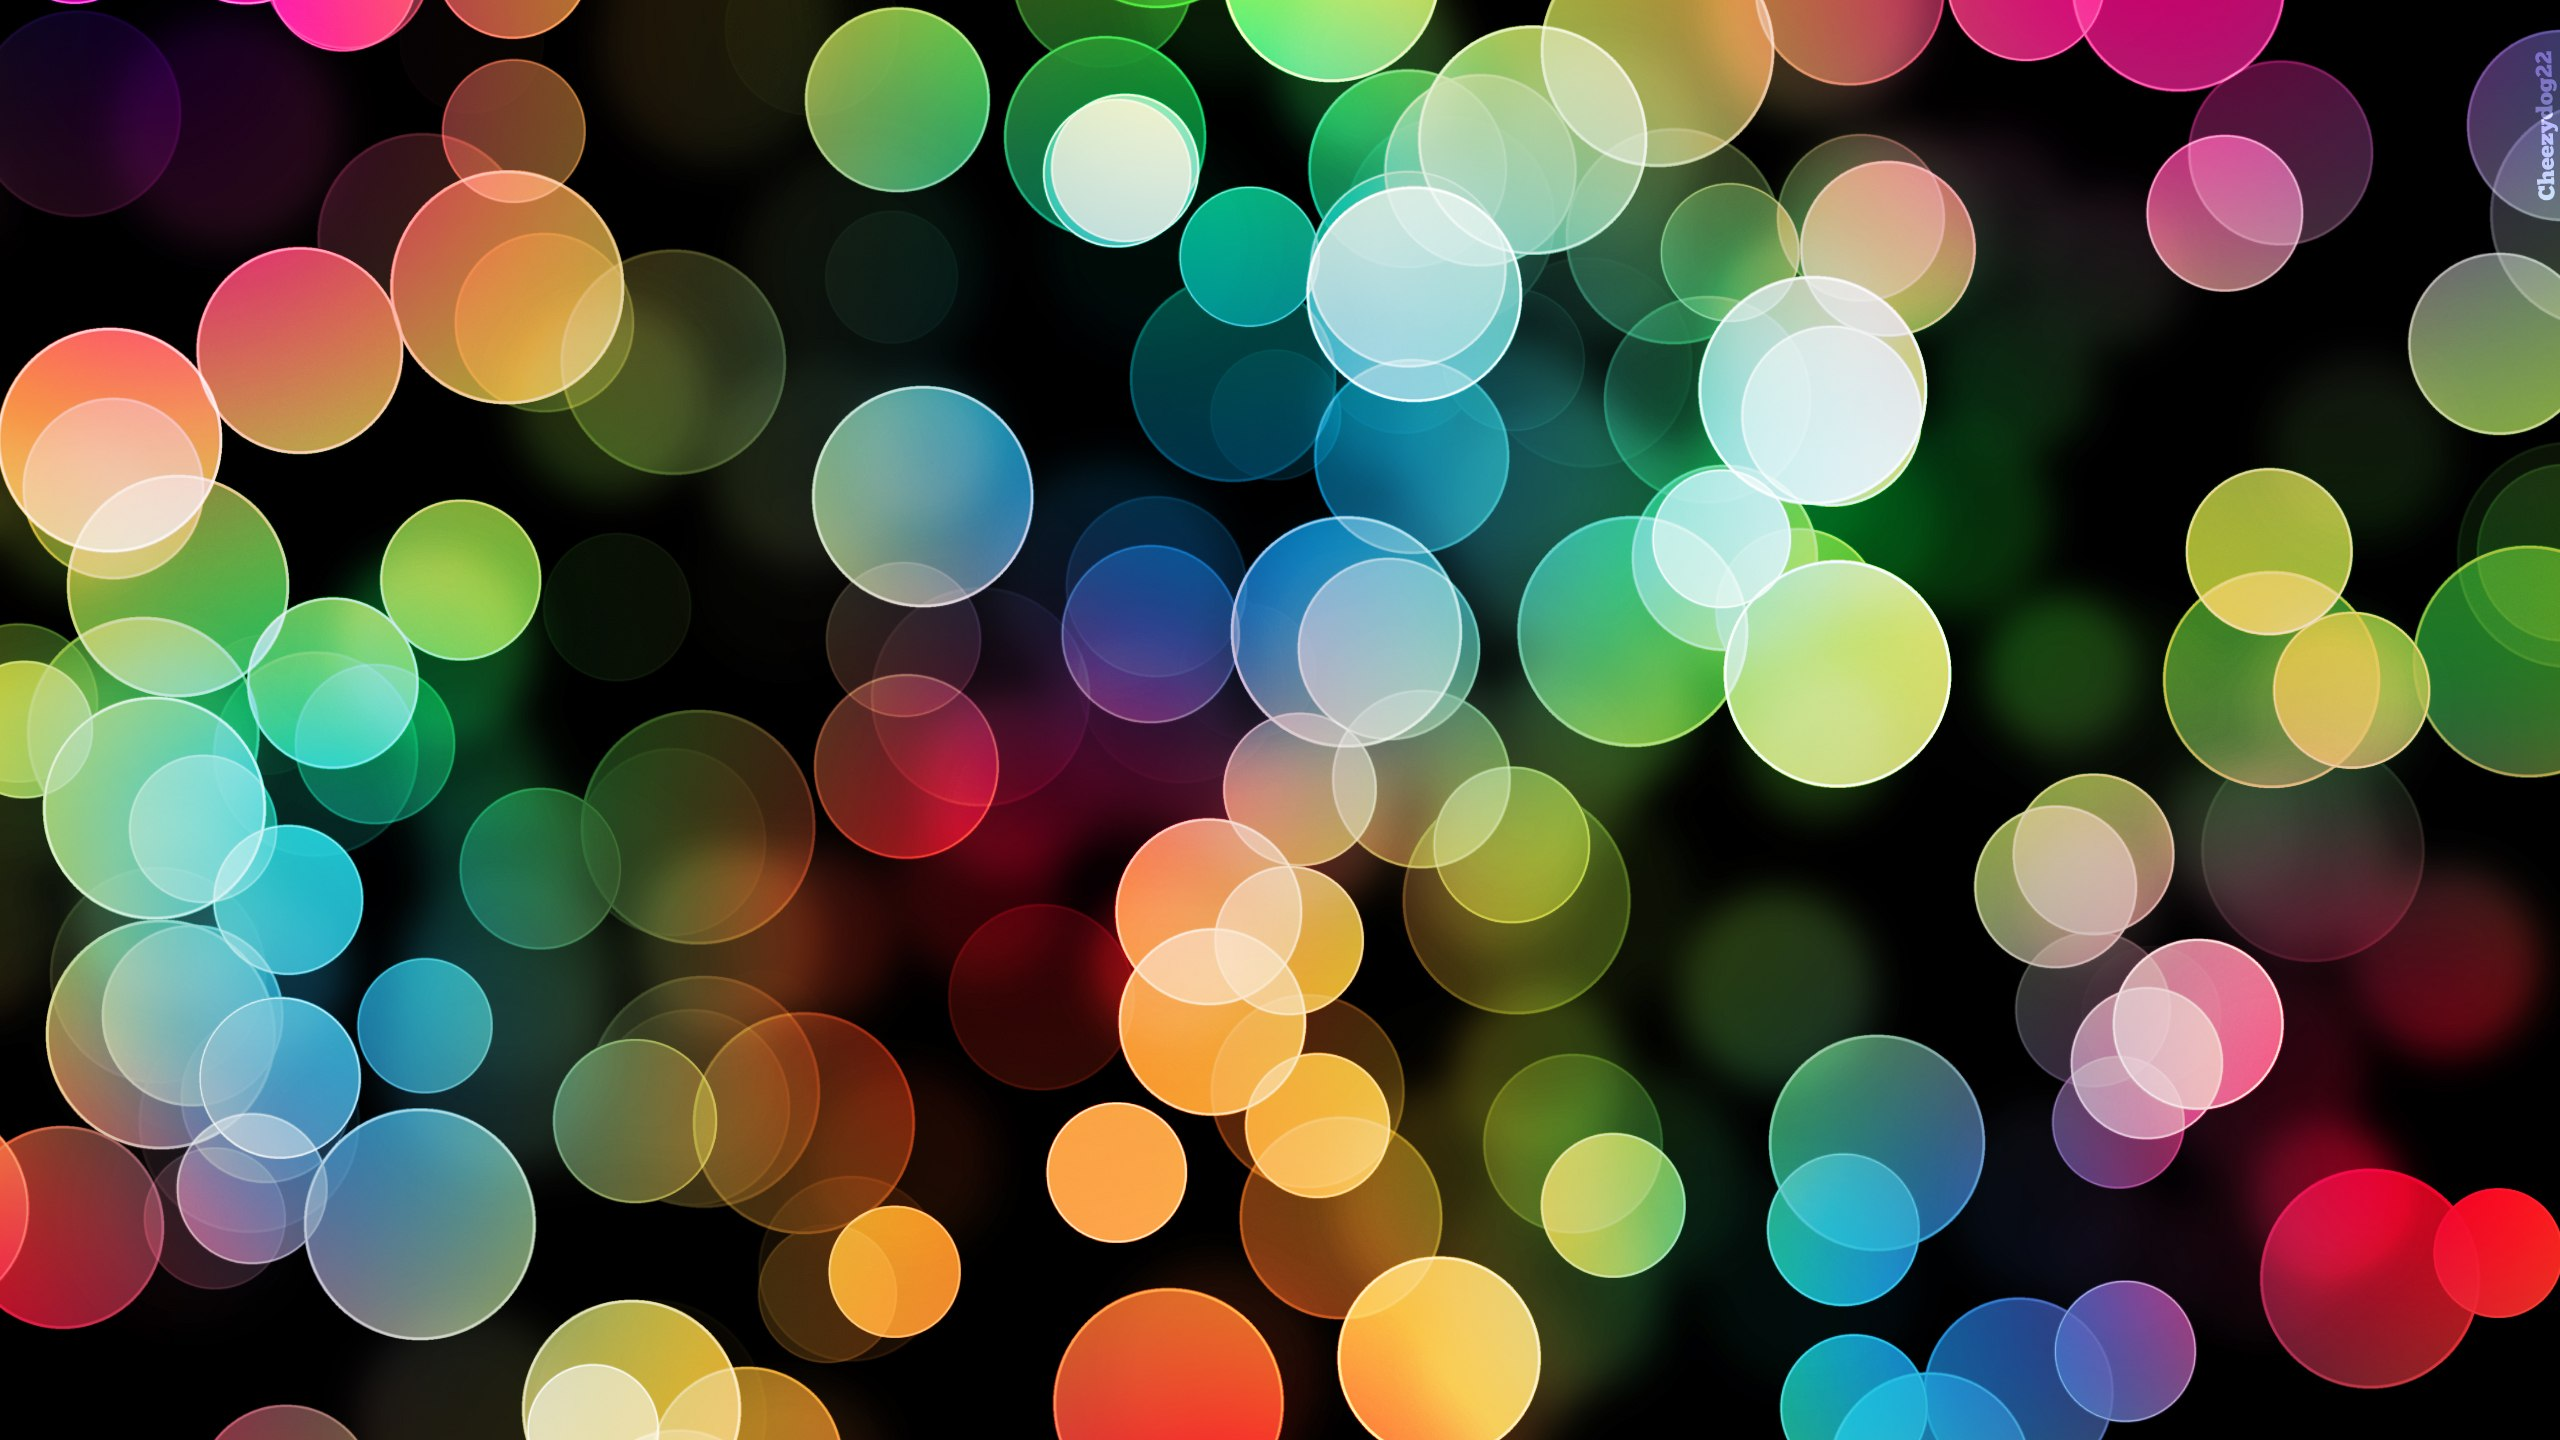 Lights Wallpaper